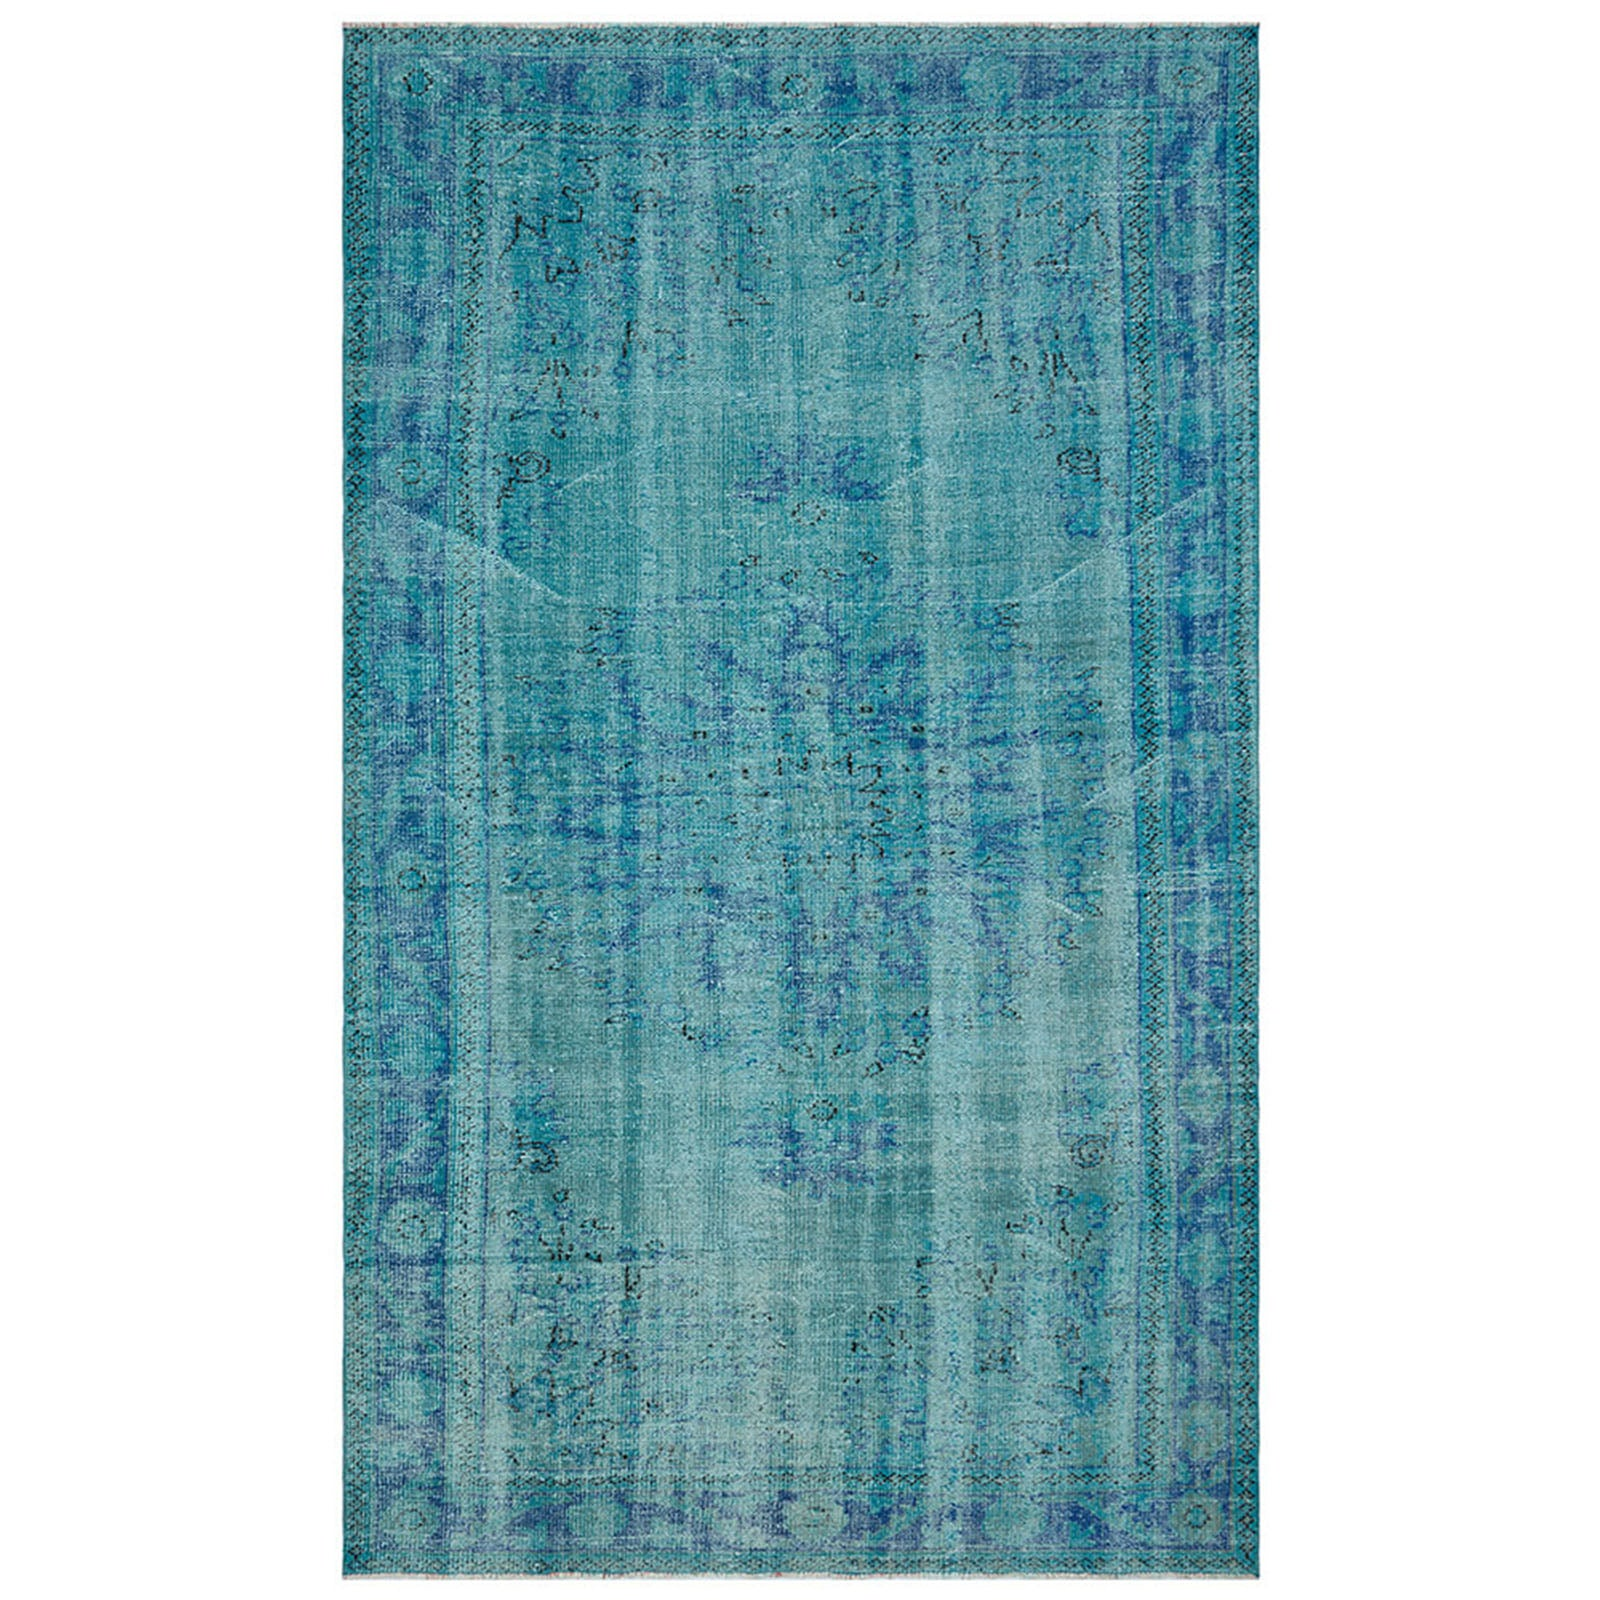 Hali 179X308 CM Bursa Handmade over dyed 2085